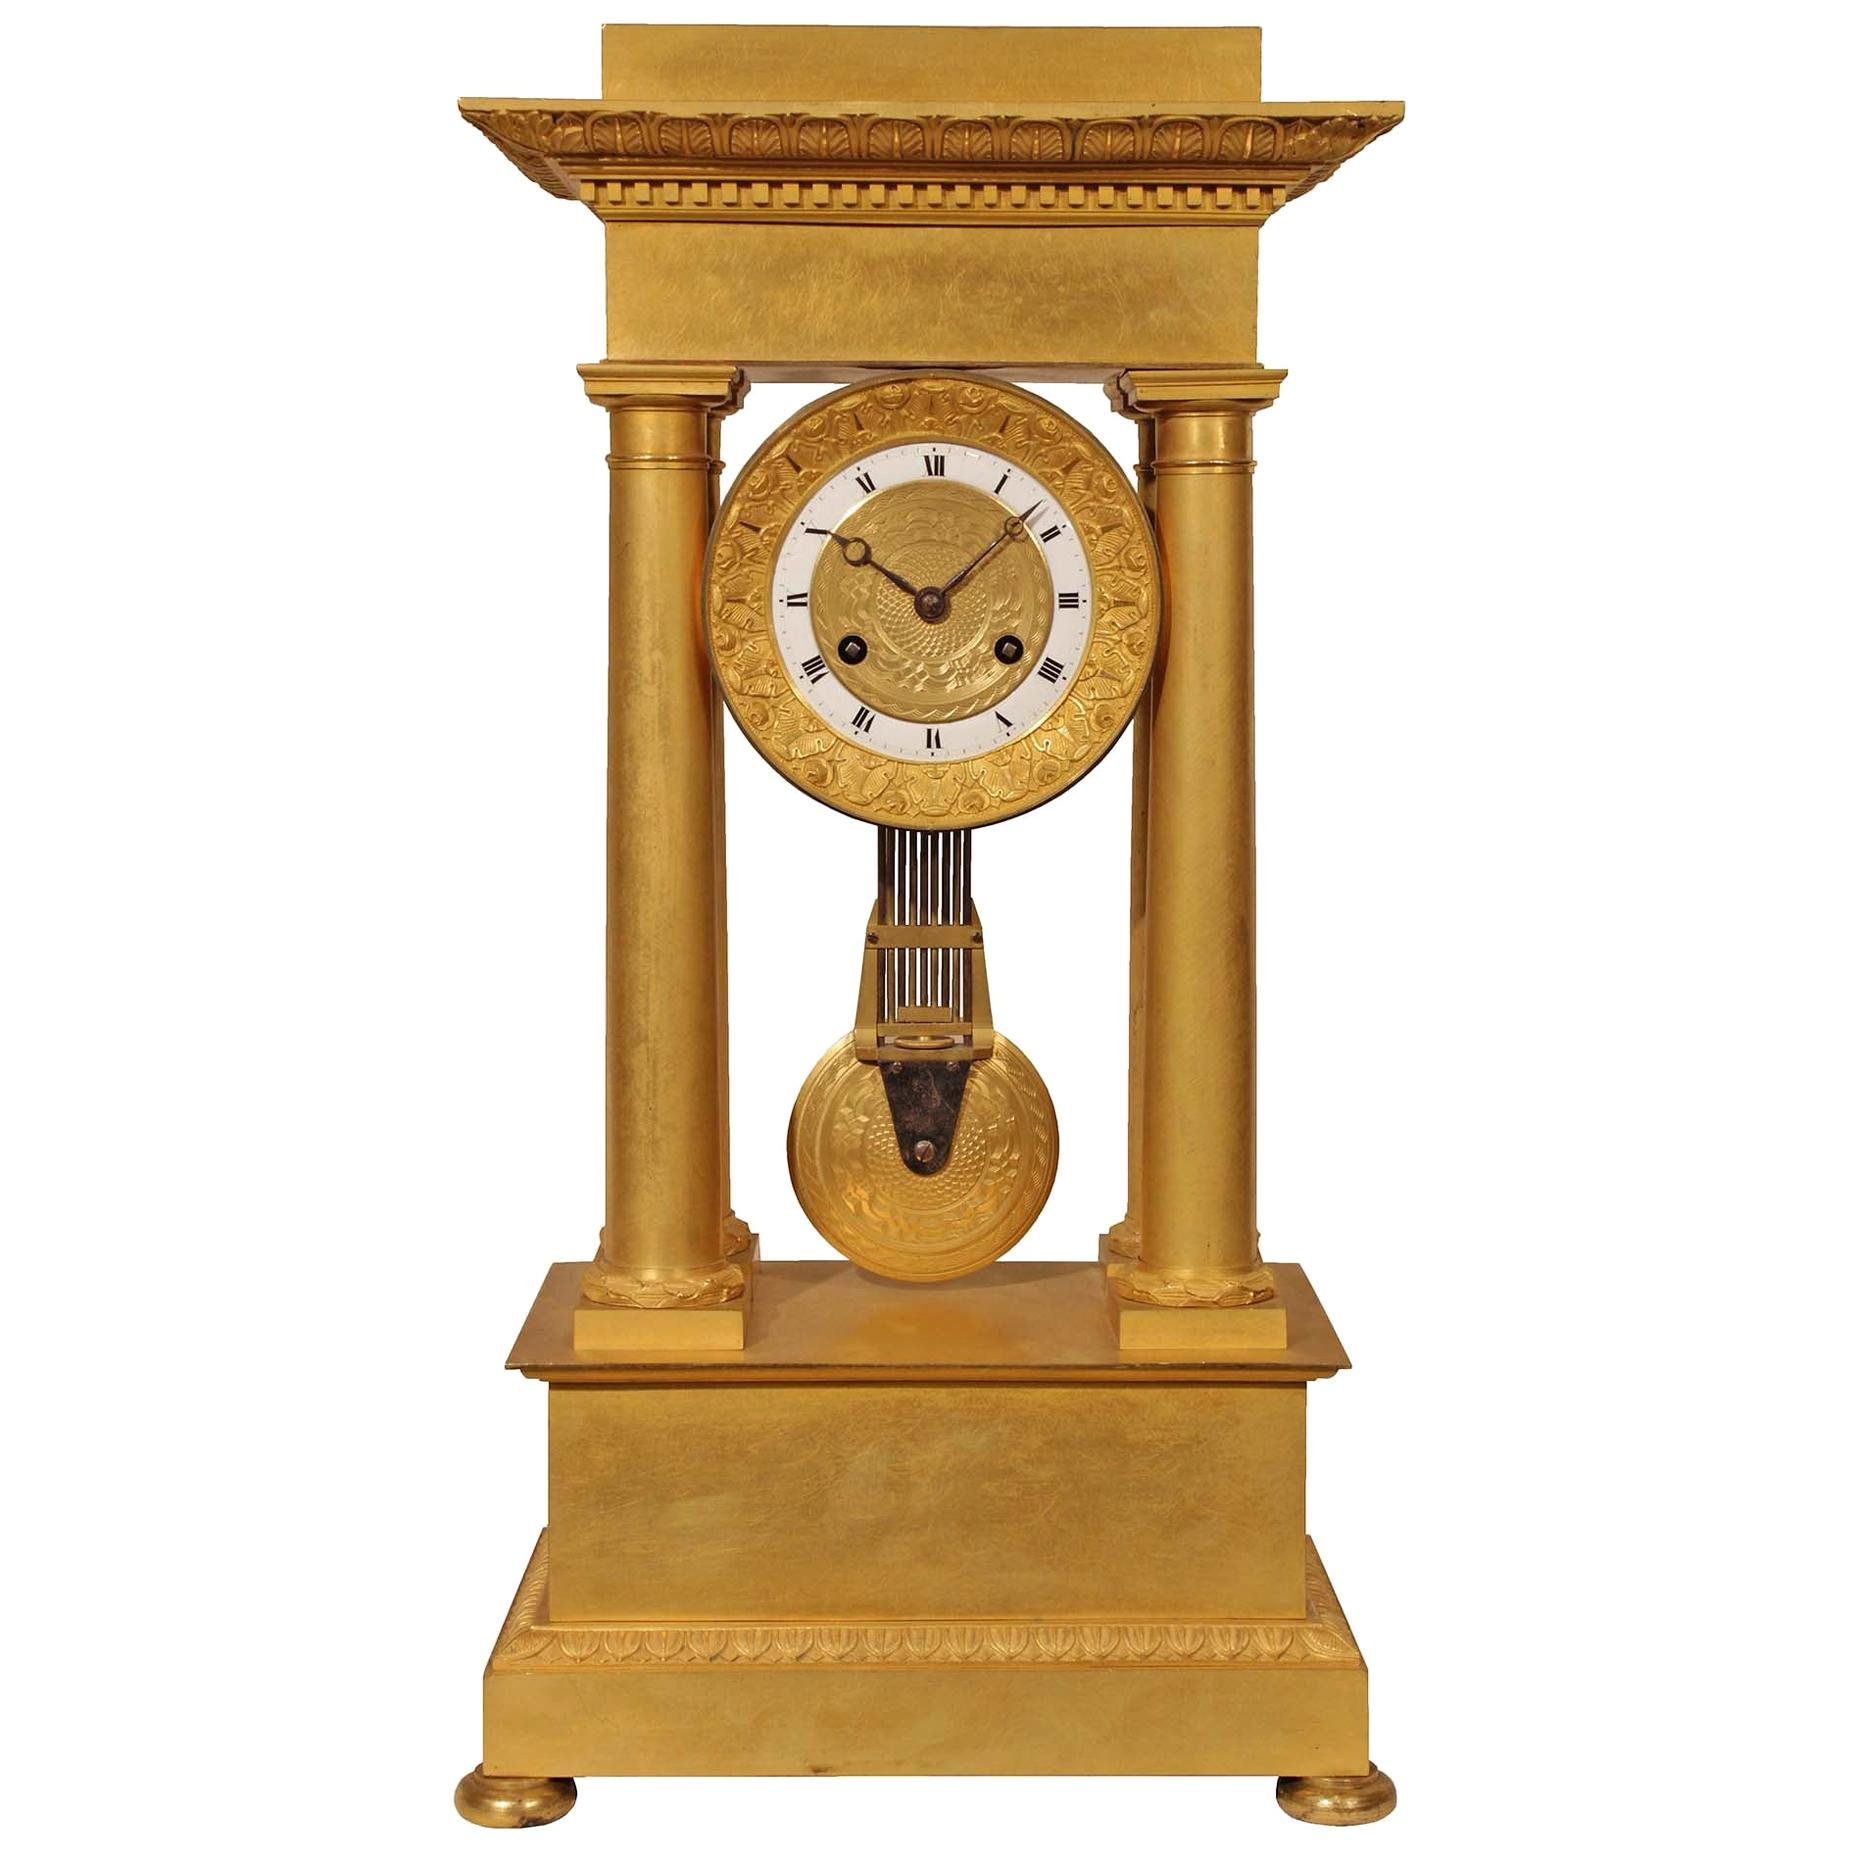 French Empire Style Mid-19th Century Ormolu Clock